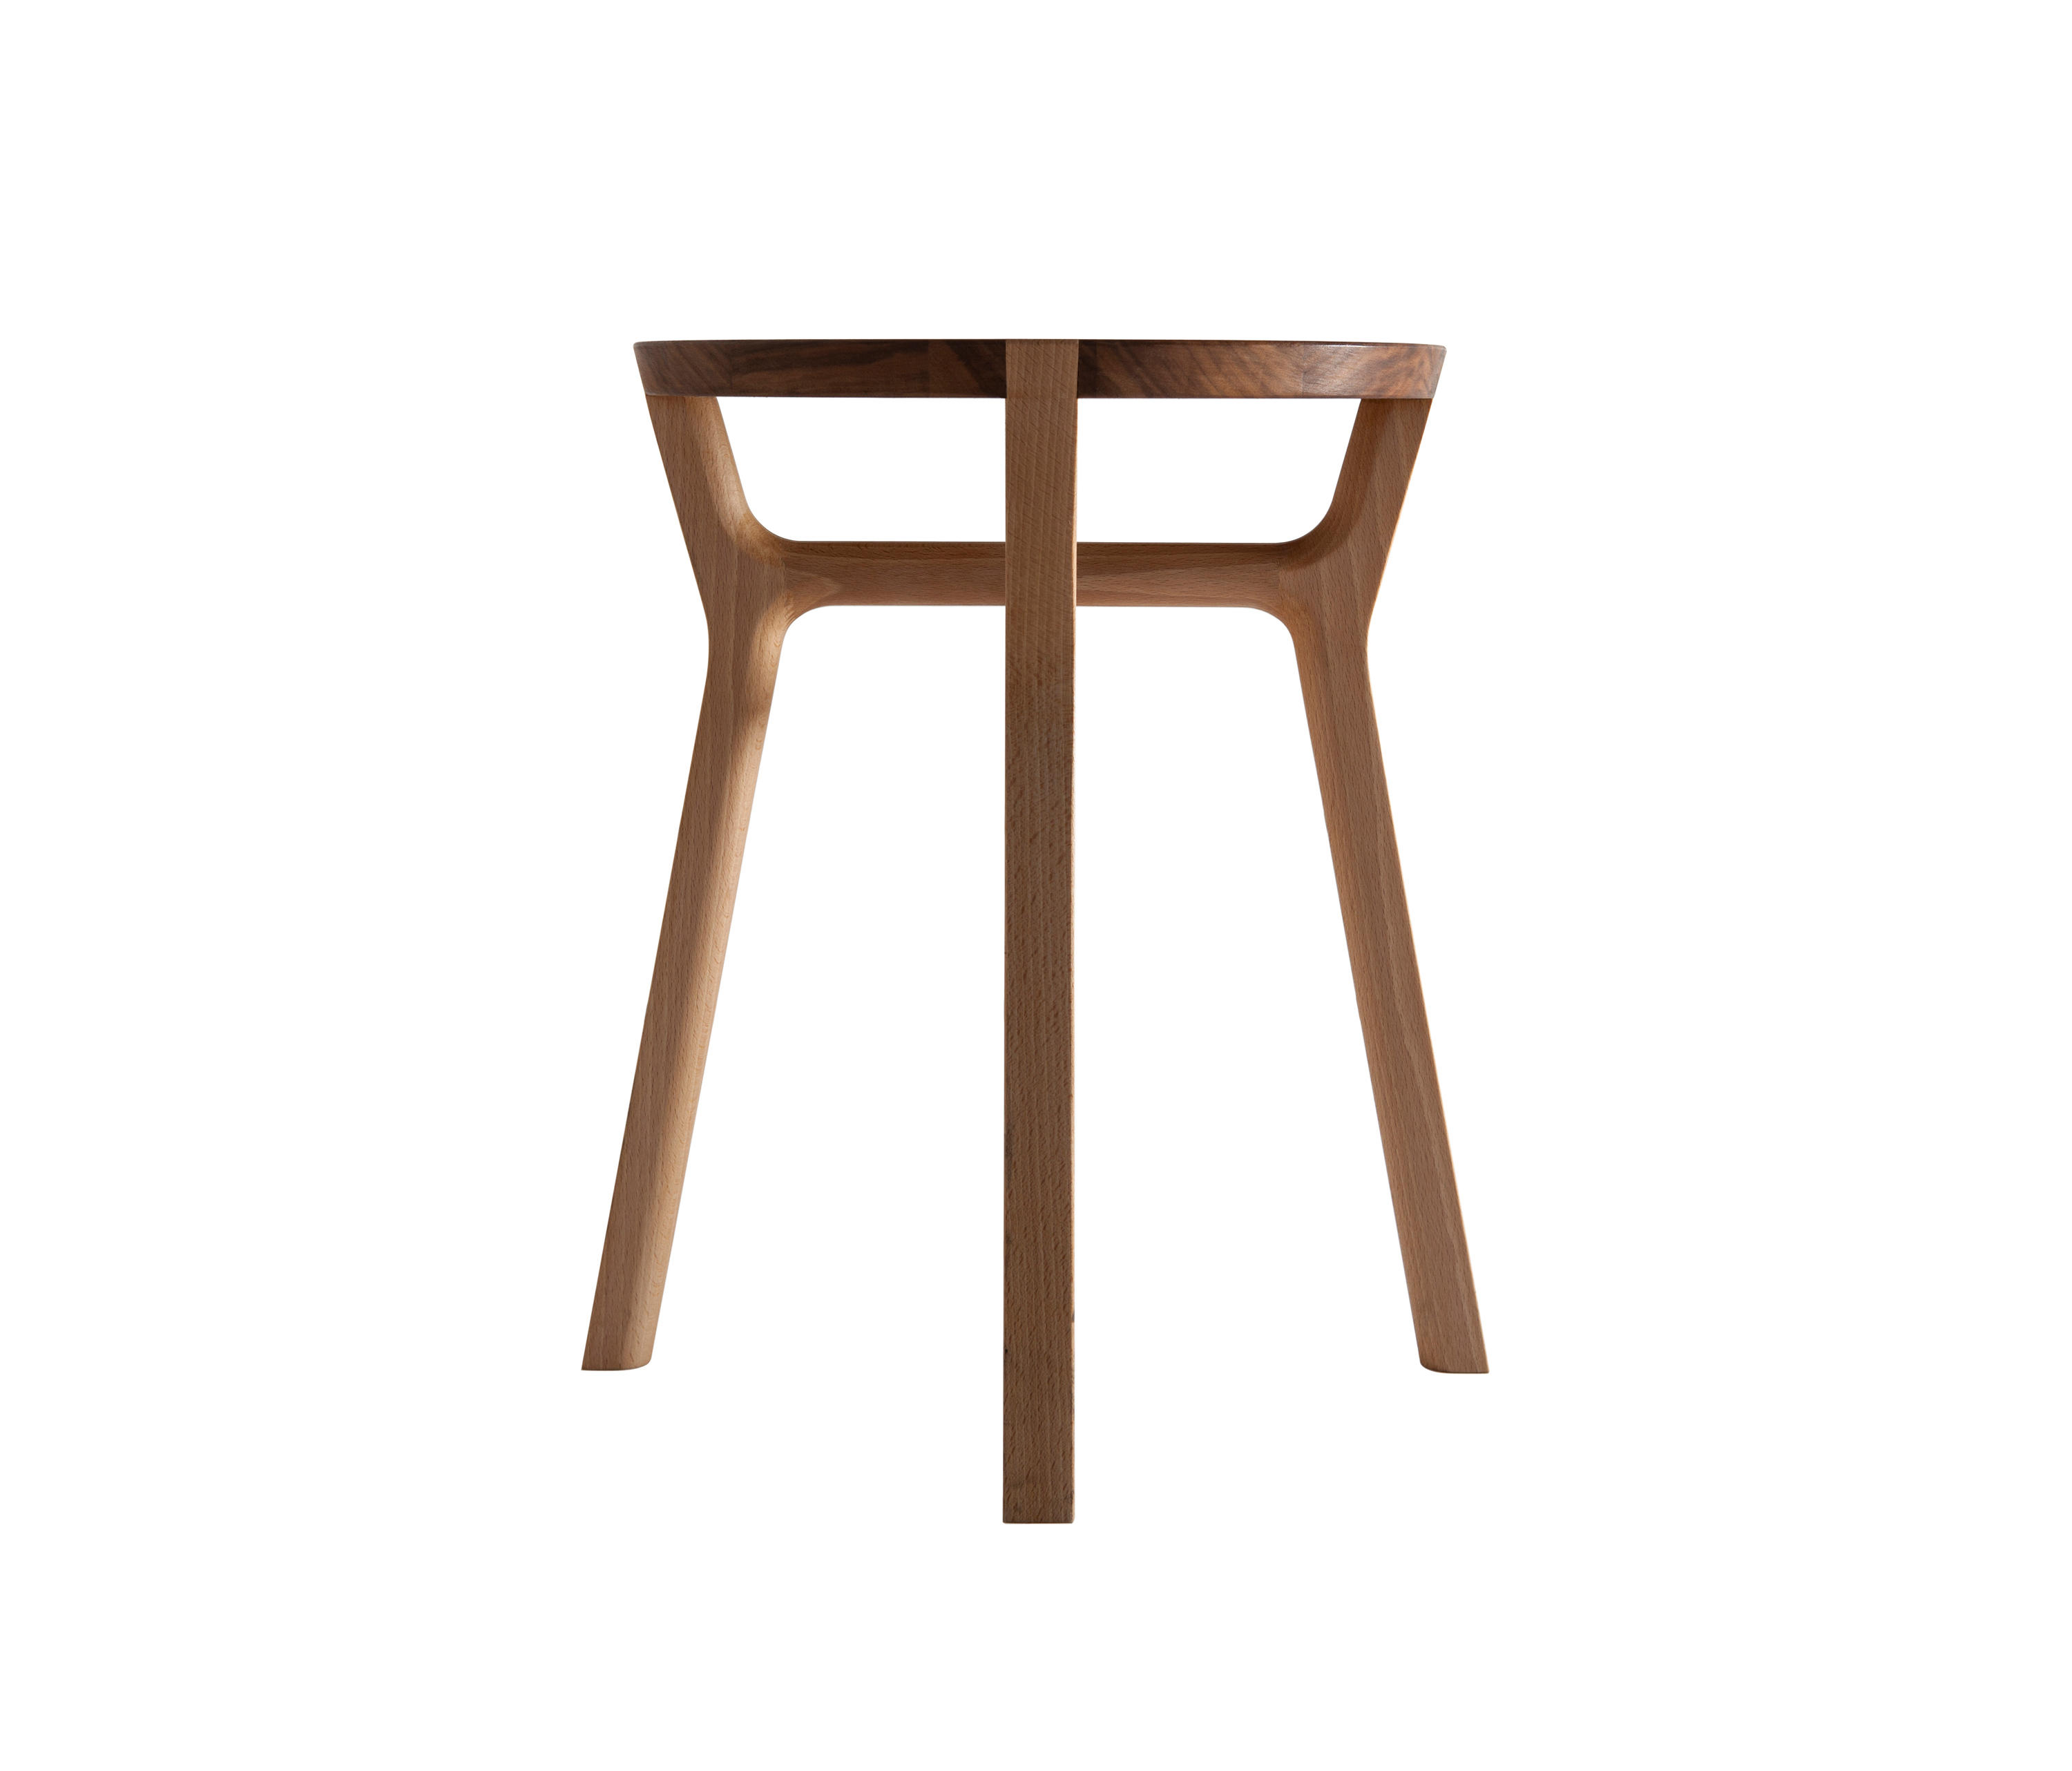 Affi Stool - <p>A stool in solid wood, made by means of simple interlocks. The detail of the legs inserted in the seat is highlighted by the contrasting hues of beech and walnut. The overlapping crossbars convey a sense of skilled craftsmanship while providing exceptional stability.</p>  | Matter of Stuff